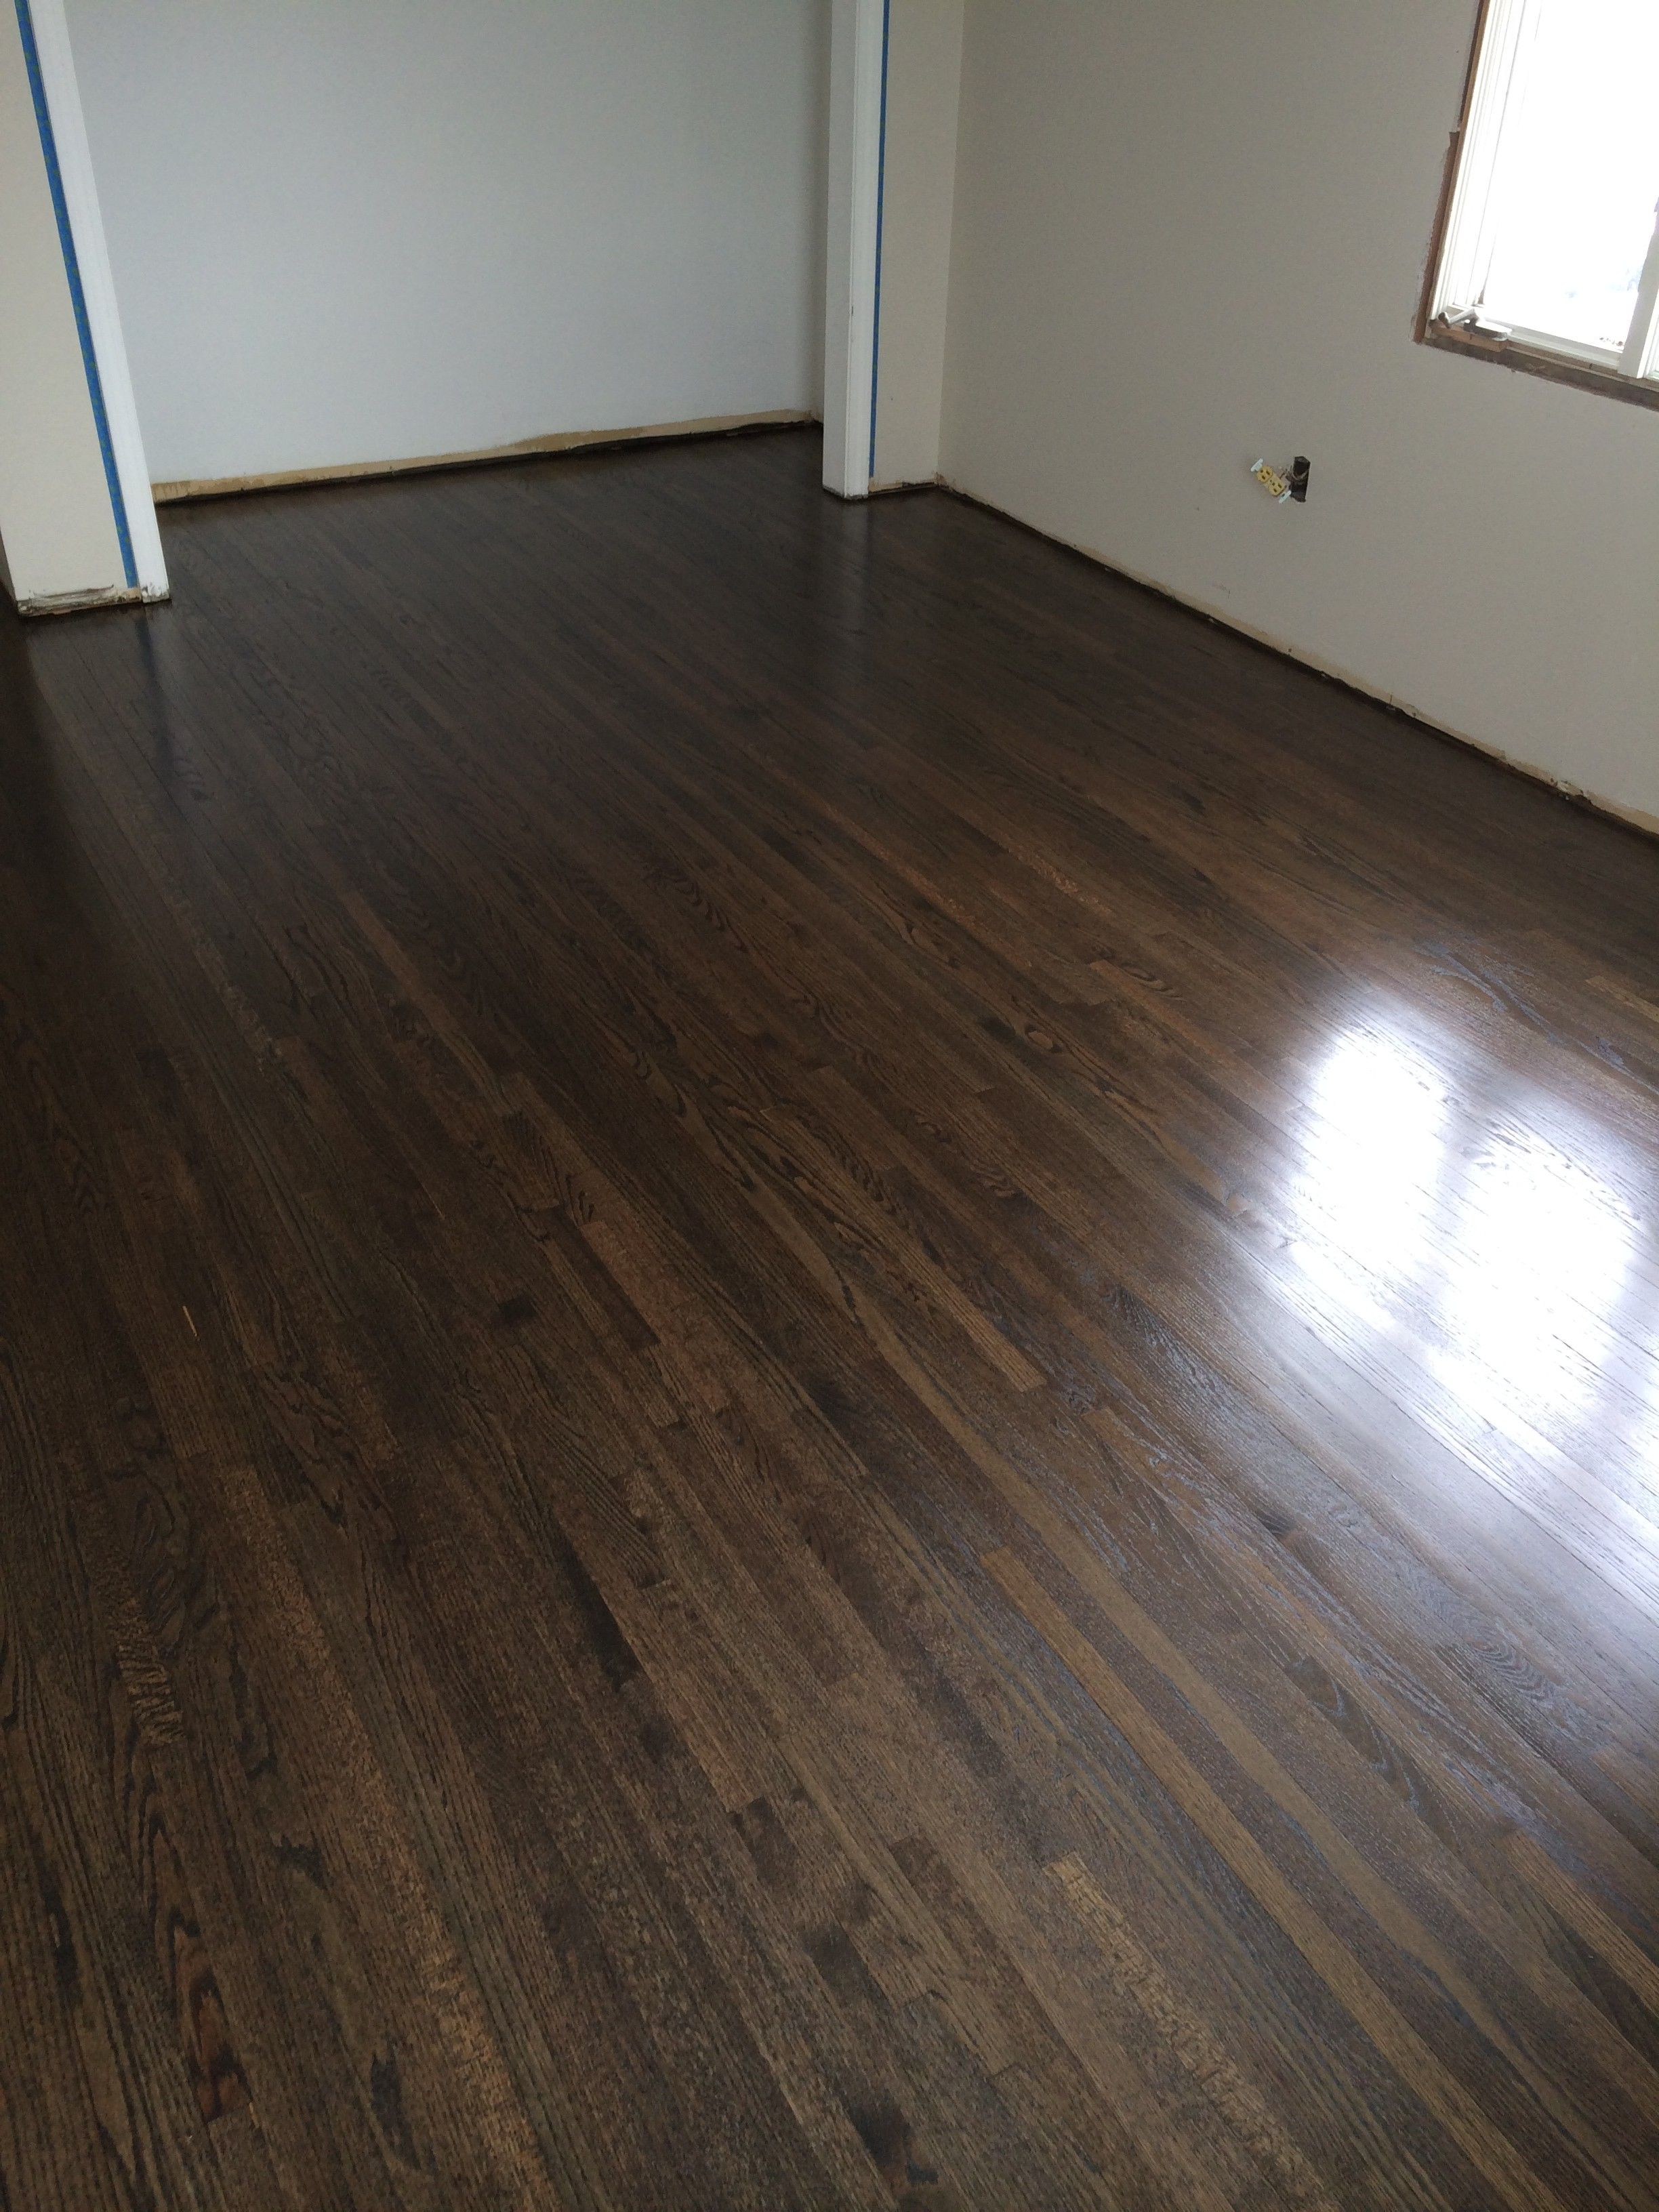 50 50 Ebony And Dark Walnut After 3rd Coat Flooring And Tile In